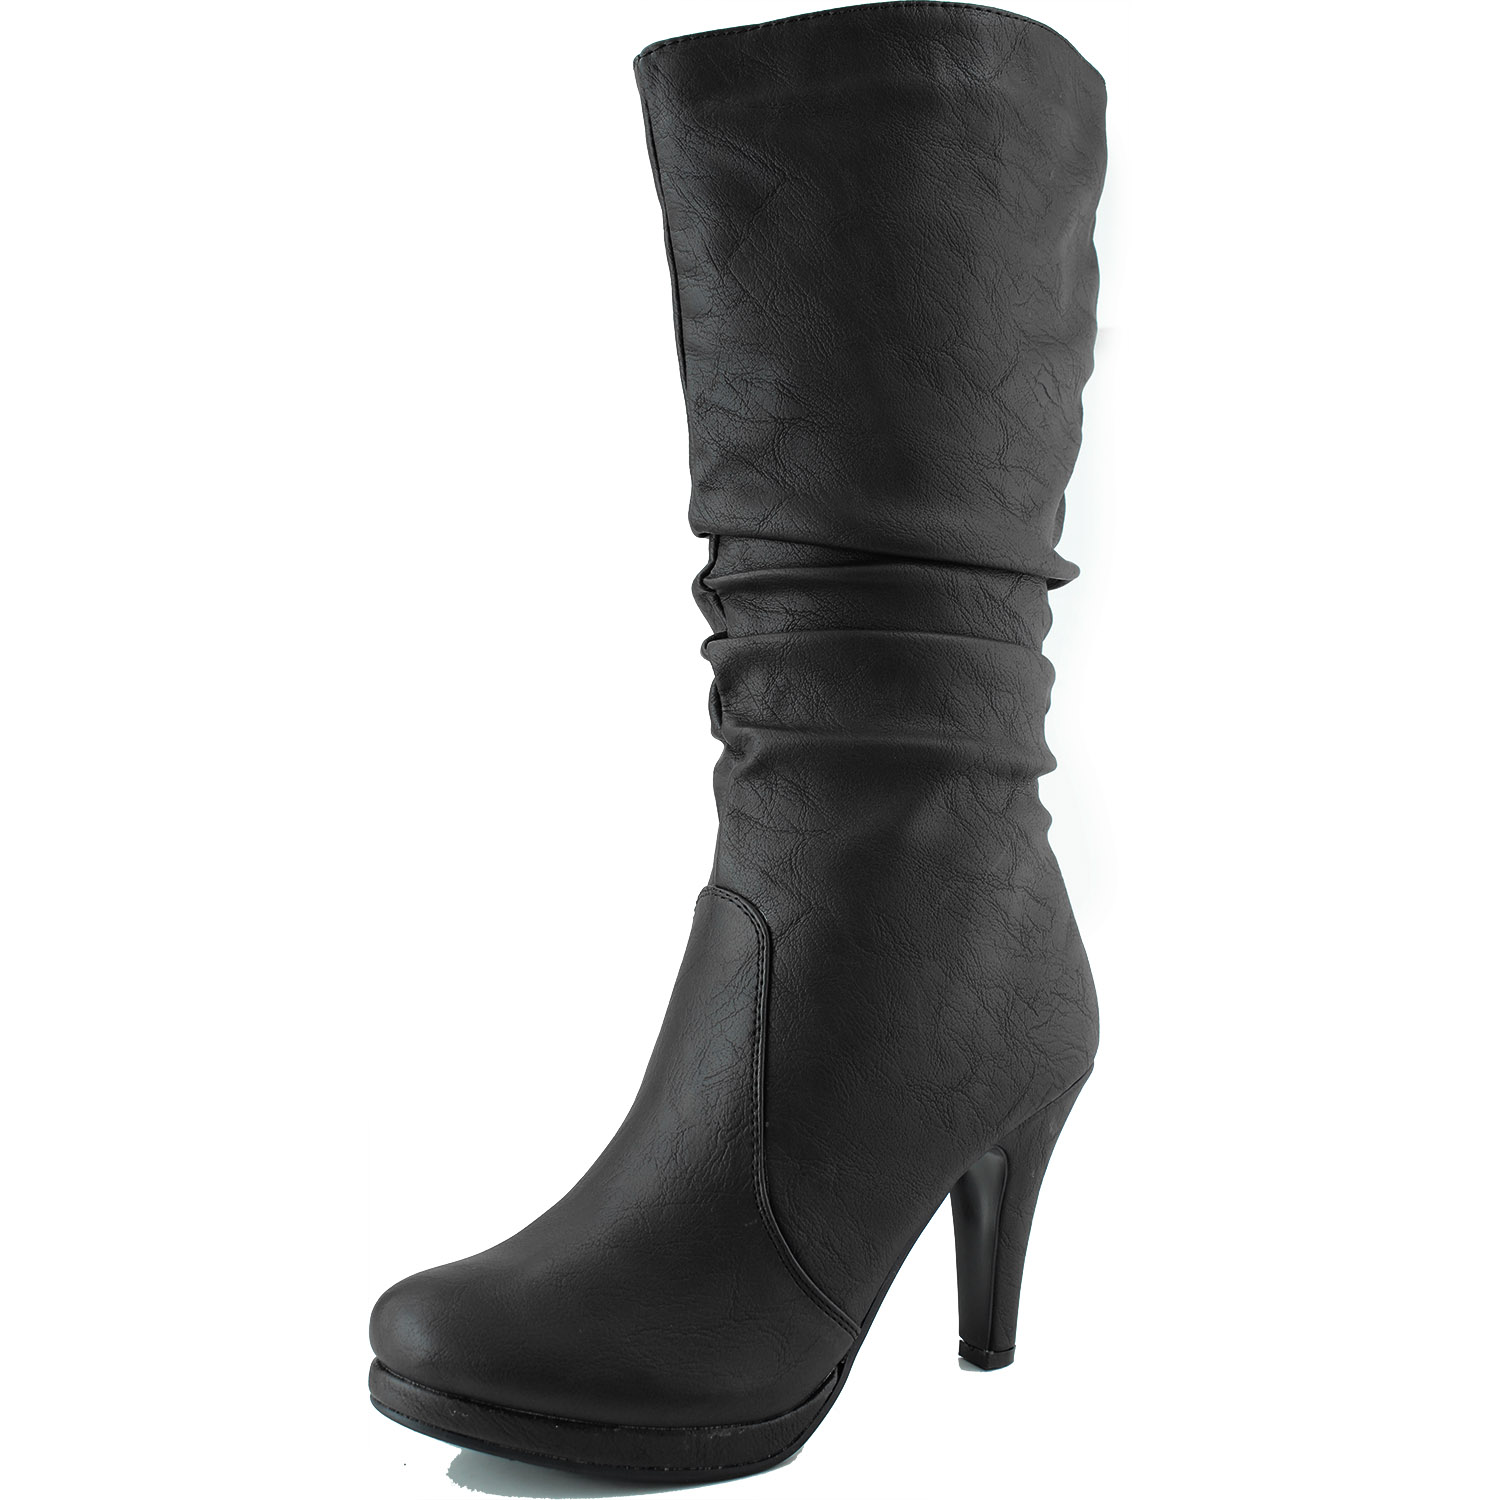 Top Moda Women's Mid Knee Slouched Boots Platform High Heel Round Toe Shoes at Sears.com